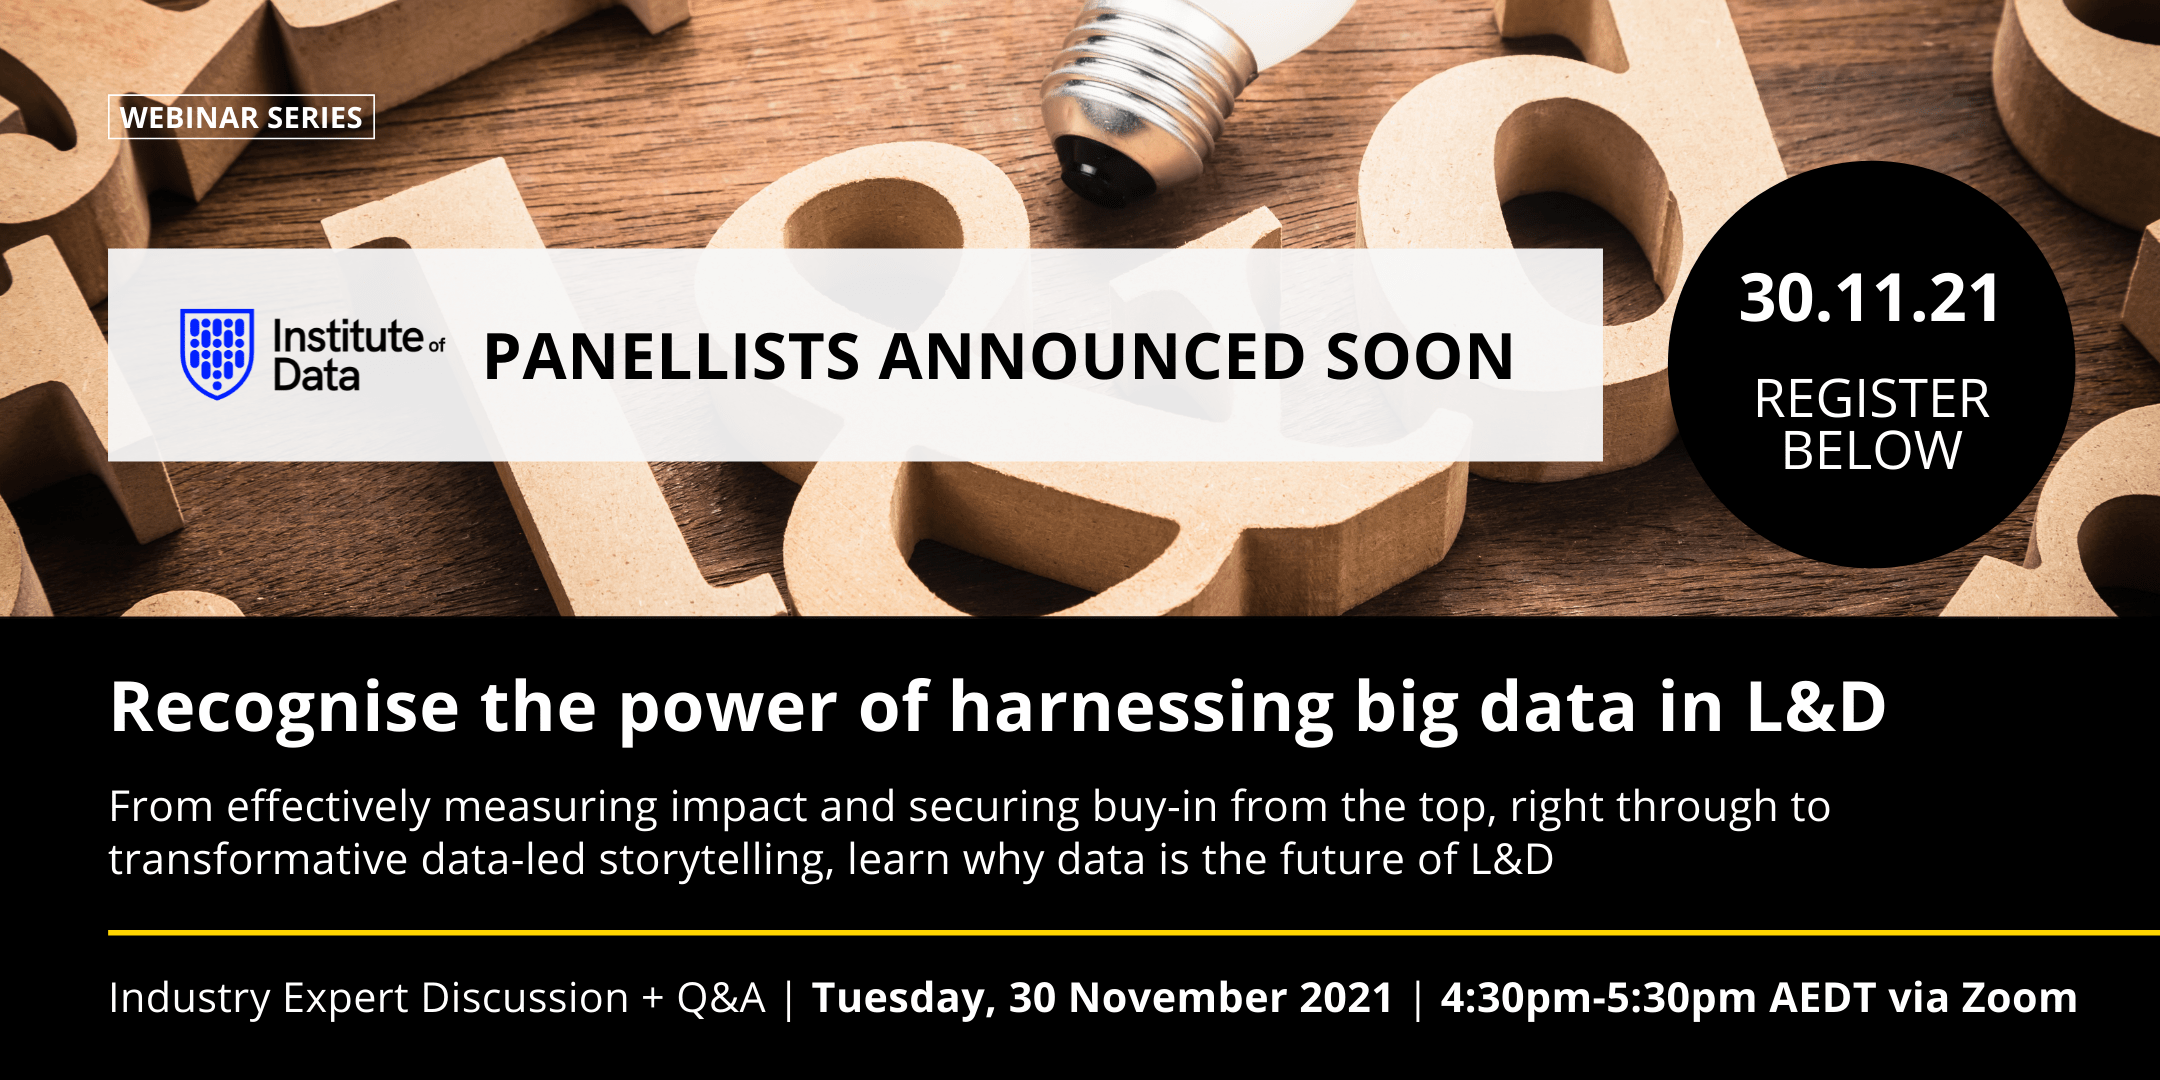 Recognise the power of harnessing big data in L&D APAC - 30 November 2021 - Industry webinar